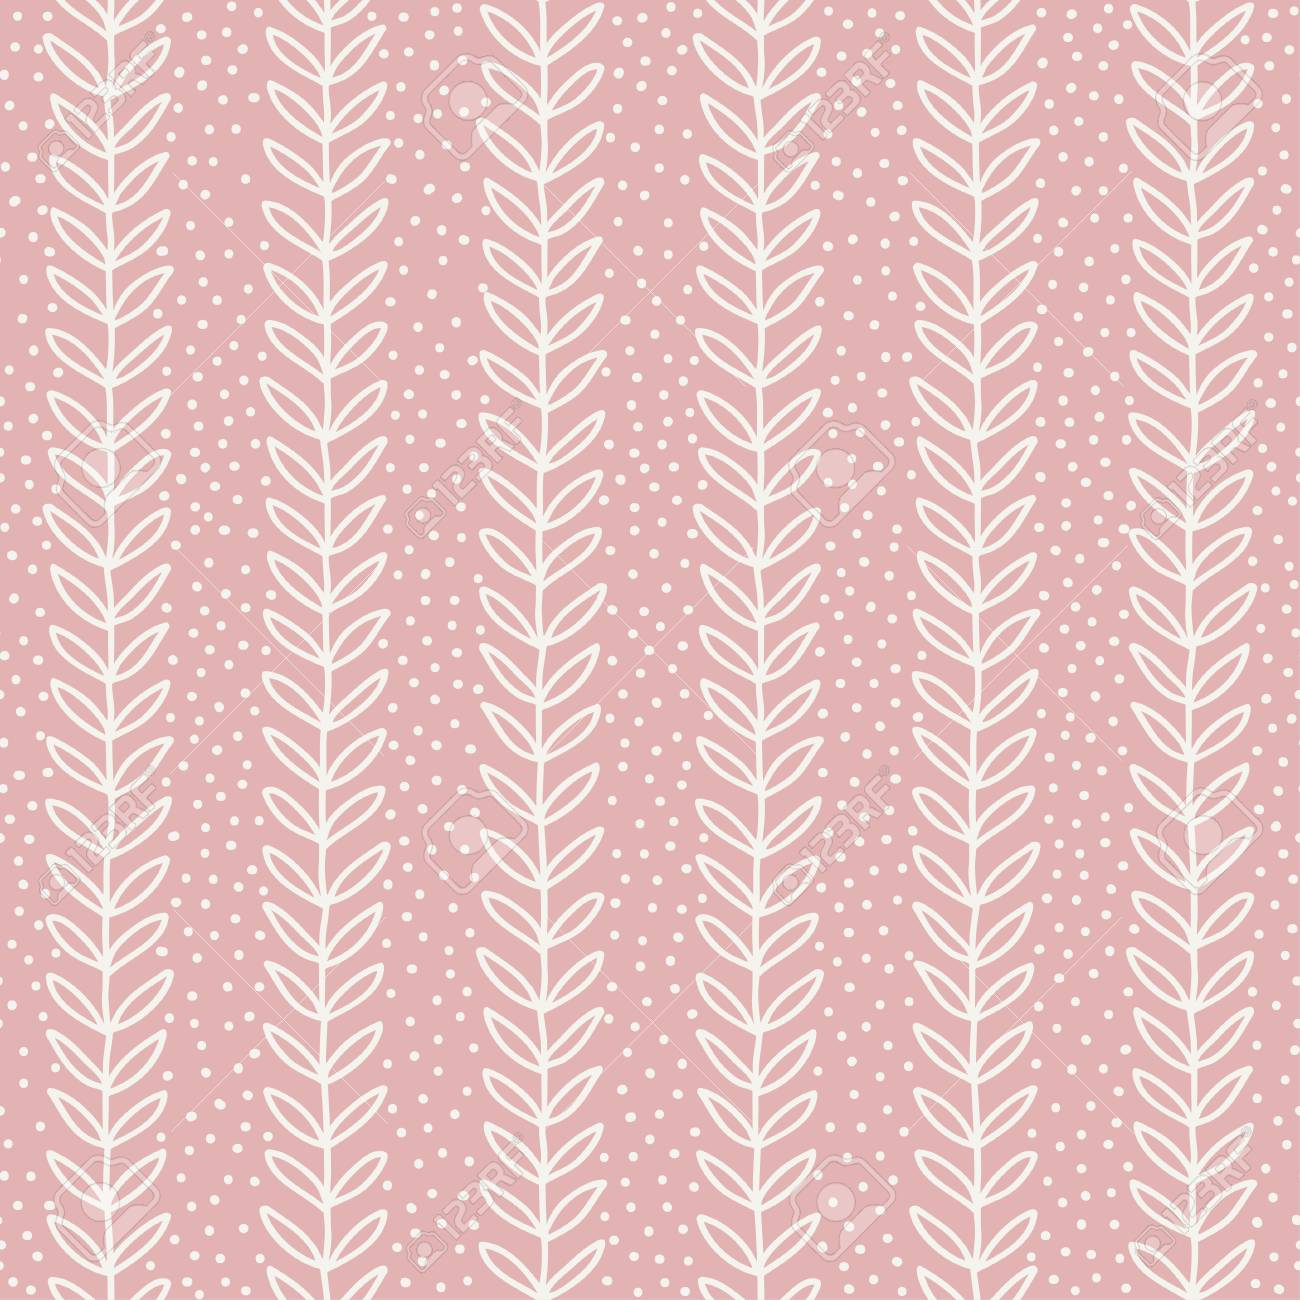 Simple Leaf Seamless Pattern Hand Drawn Pink Background Cute Wallpaper Vector Illustration